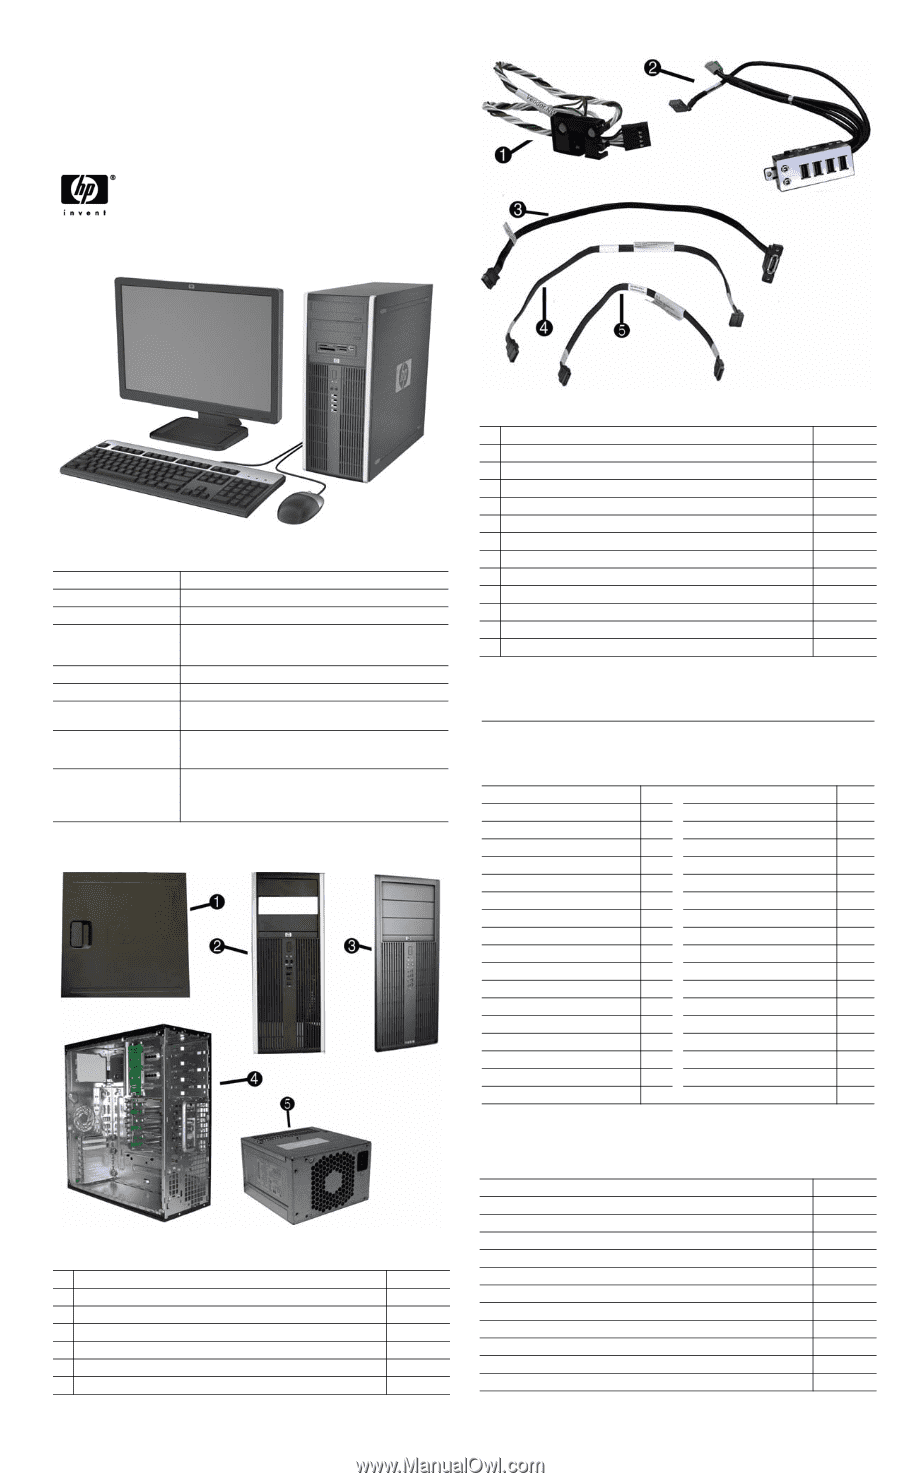 Compaq 8100 | Illustrated Parts & Service Map: HP Compaq